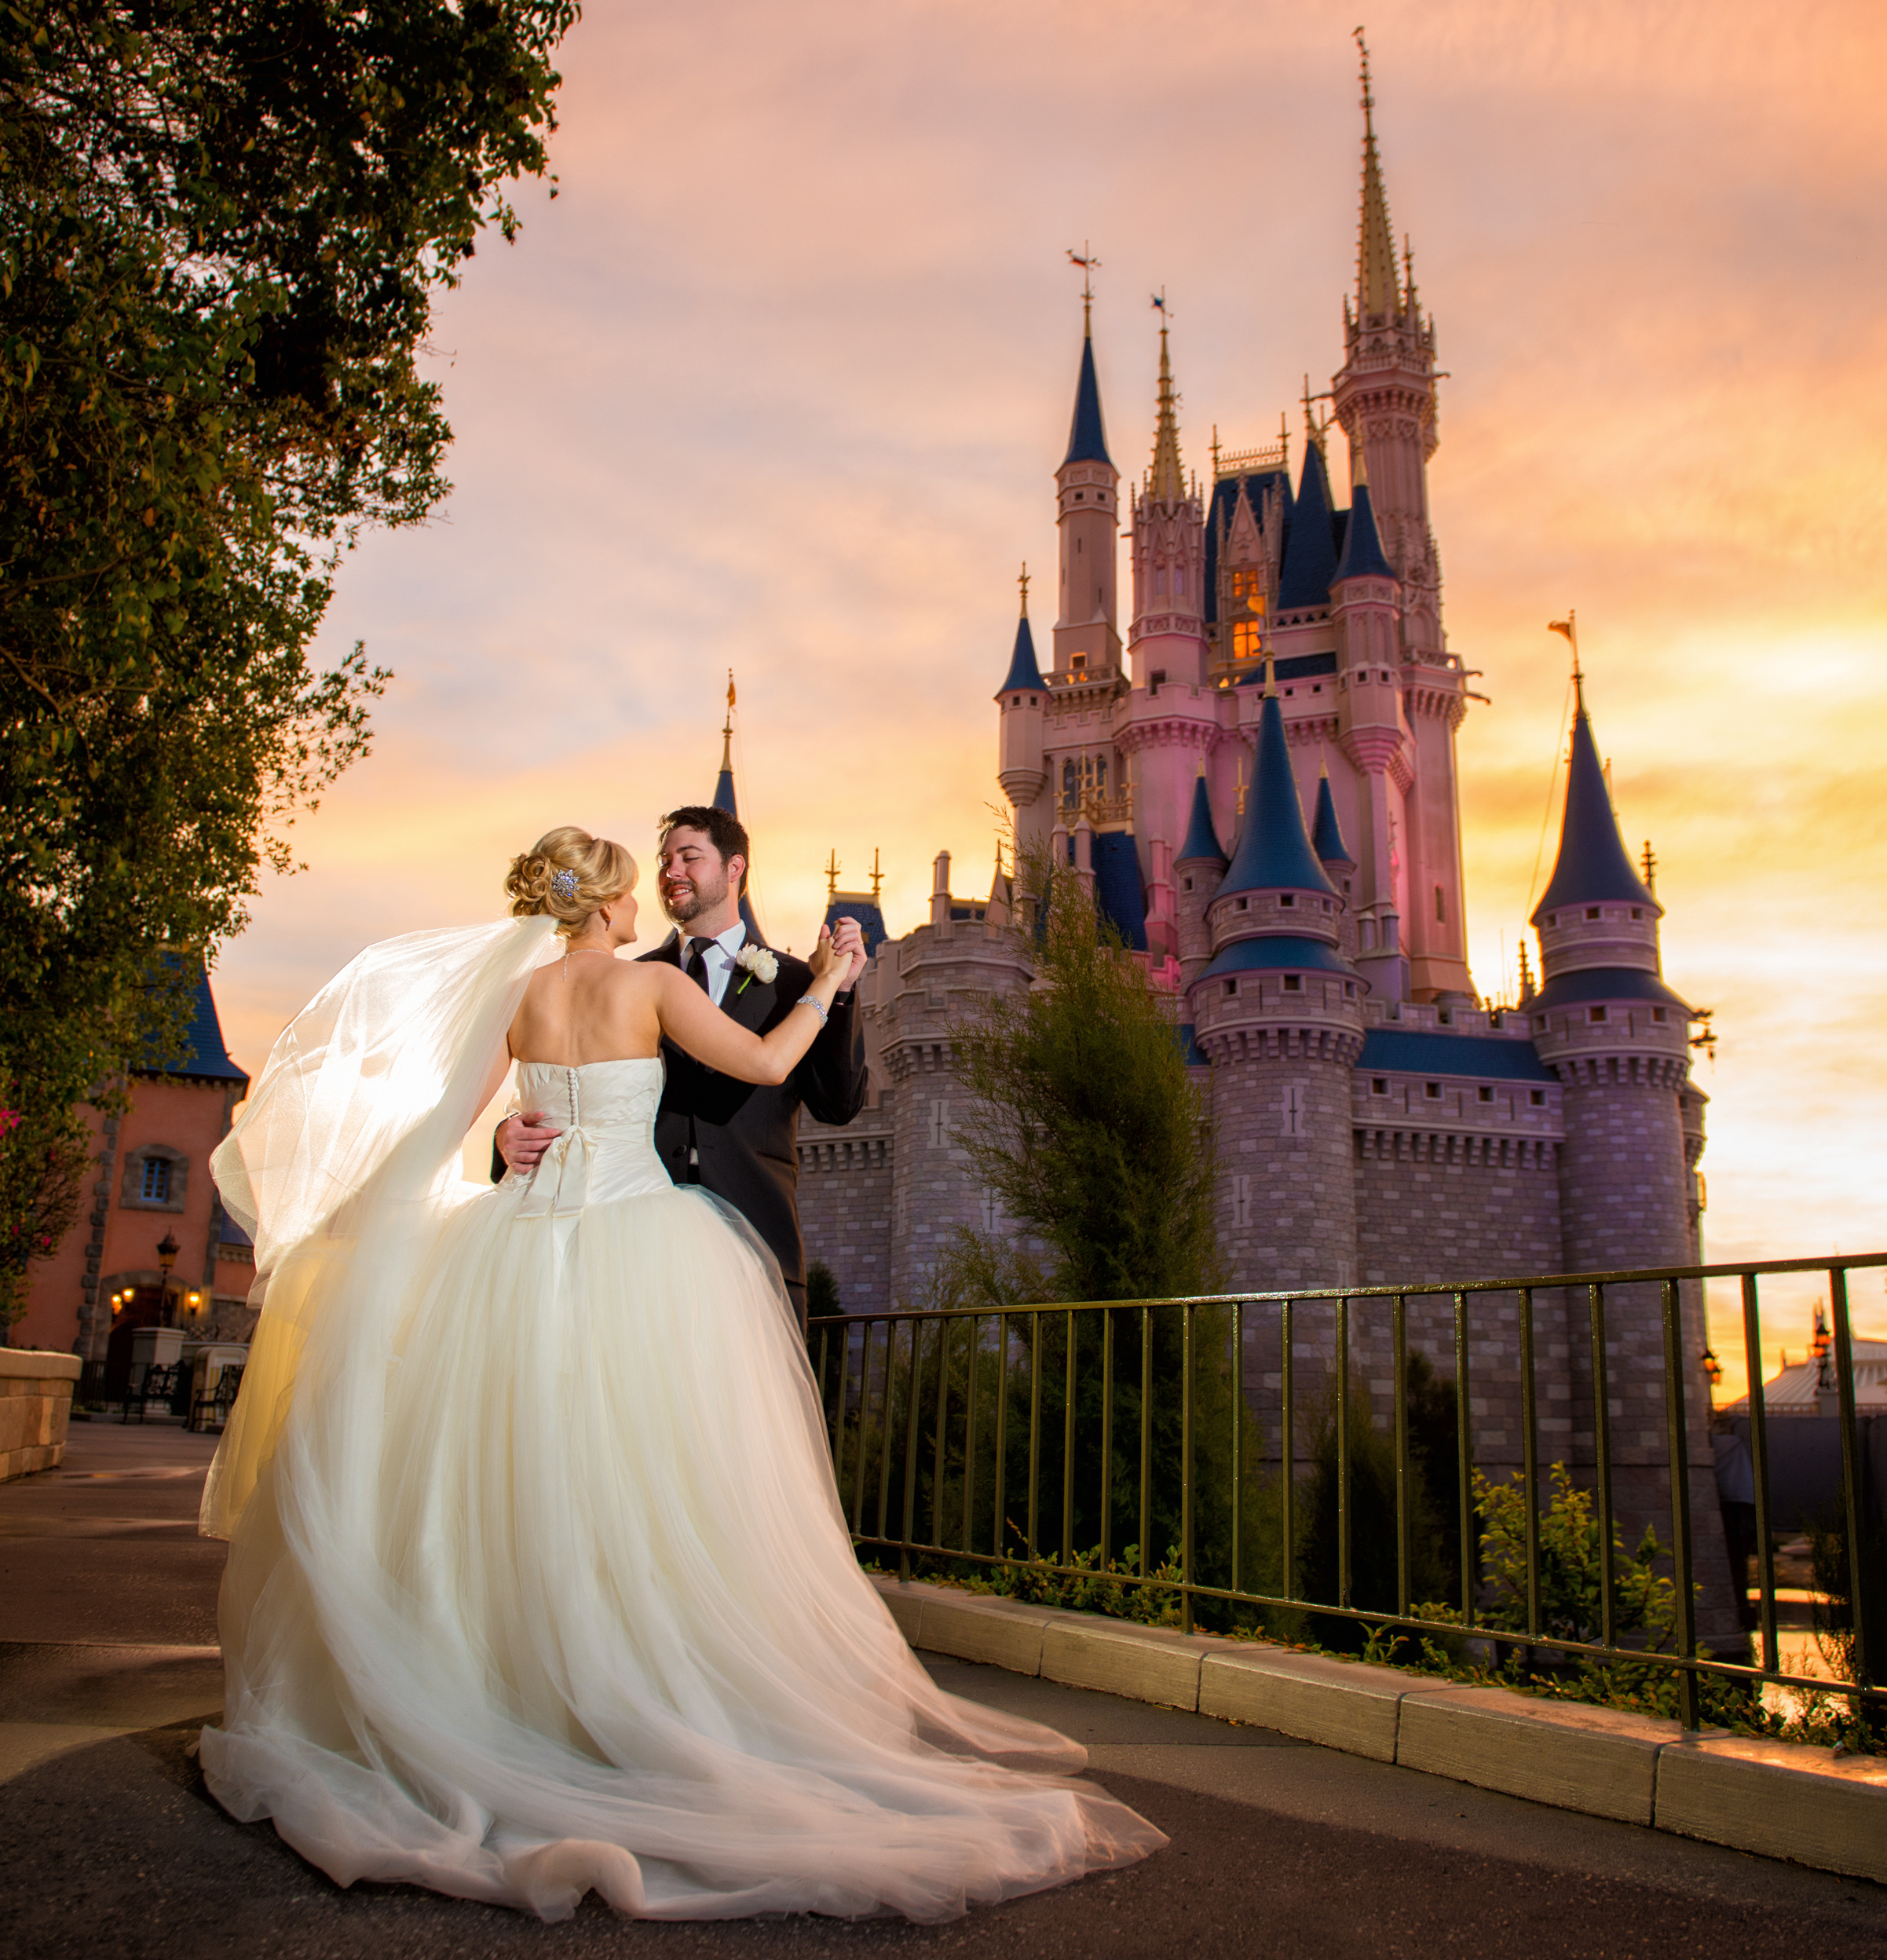 Fairy Tale Wedding: Fairy Tale Weddings: Tying The Knot At Disney Parks And